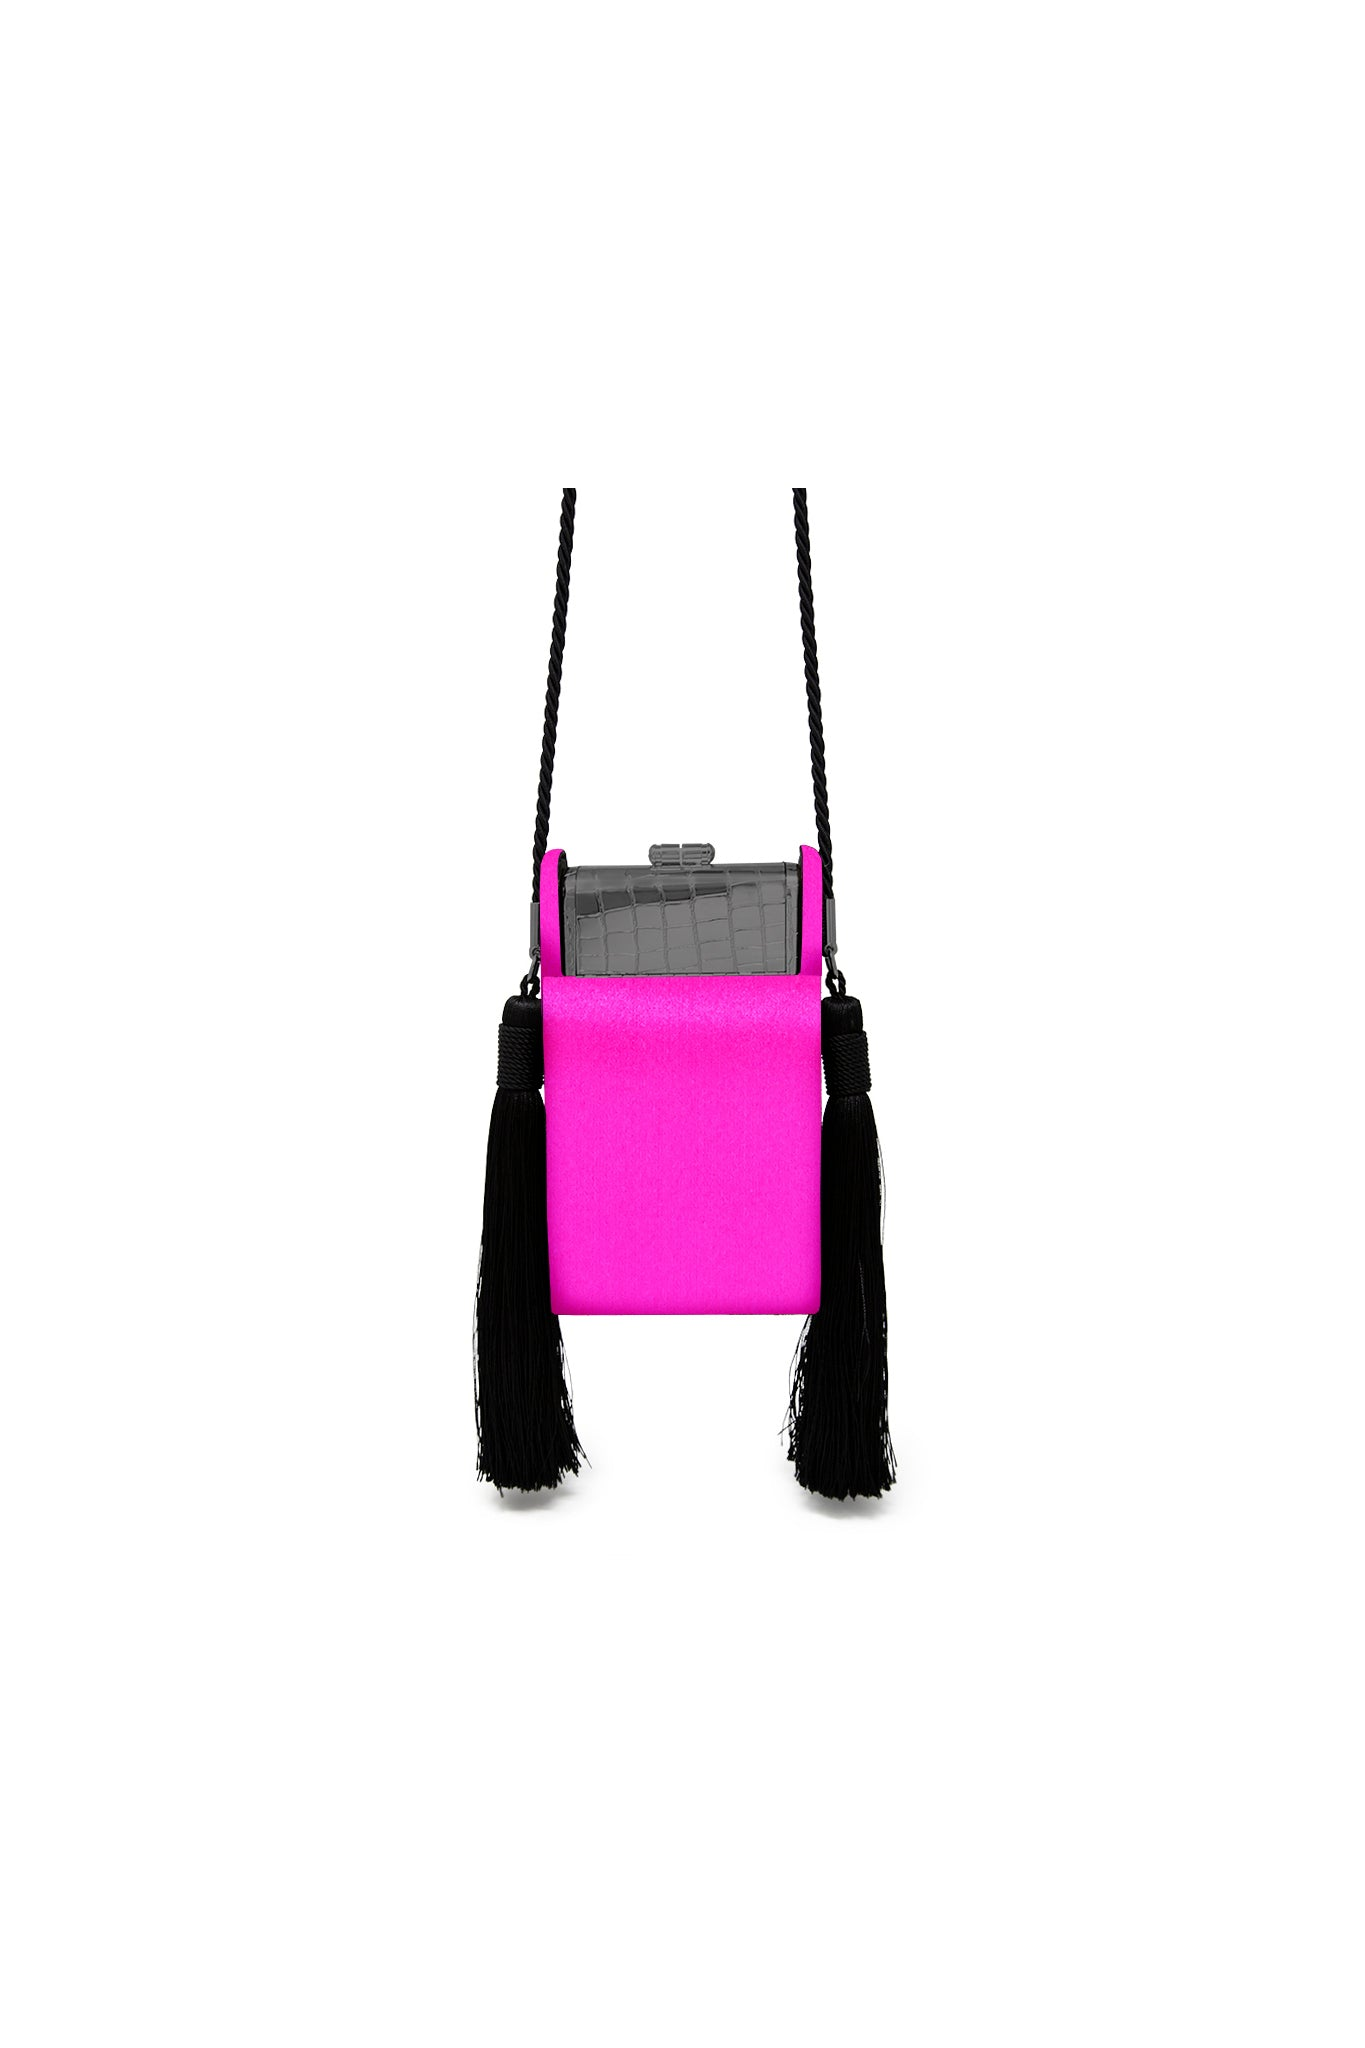 Gunmetal Croco Palladium Phone Case with Fuchsia Satin Tassel Case